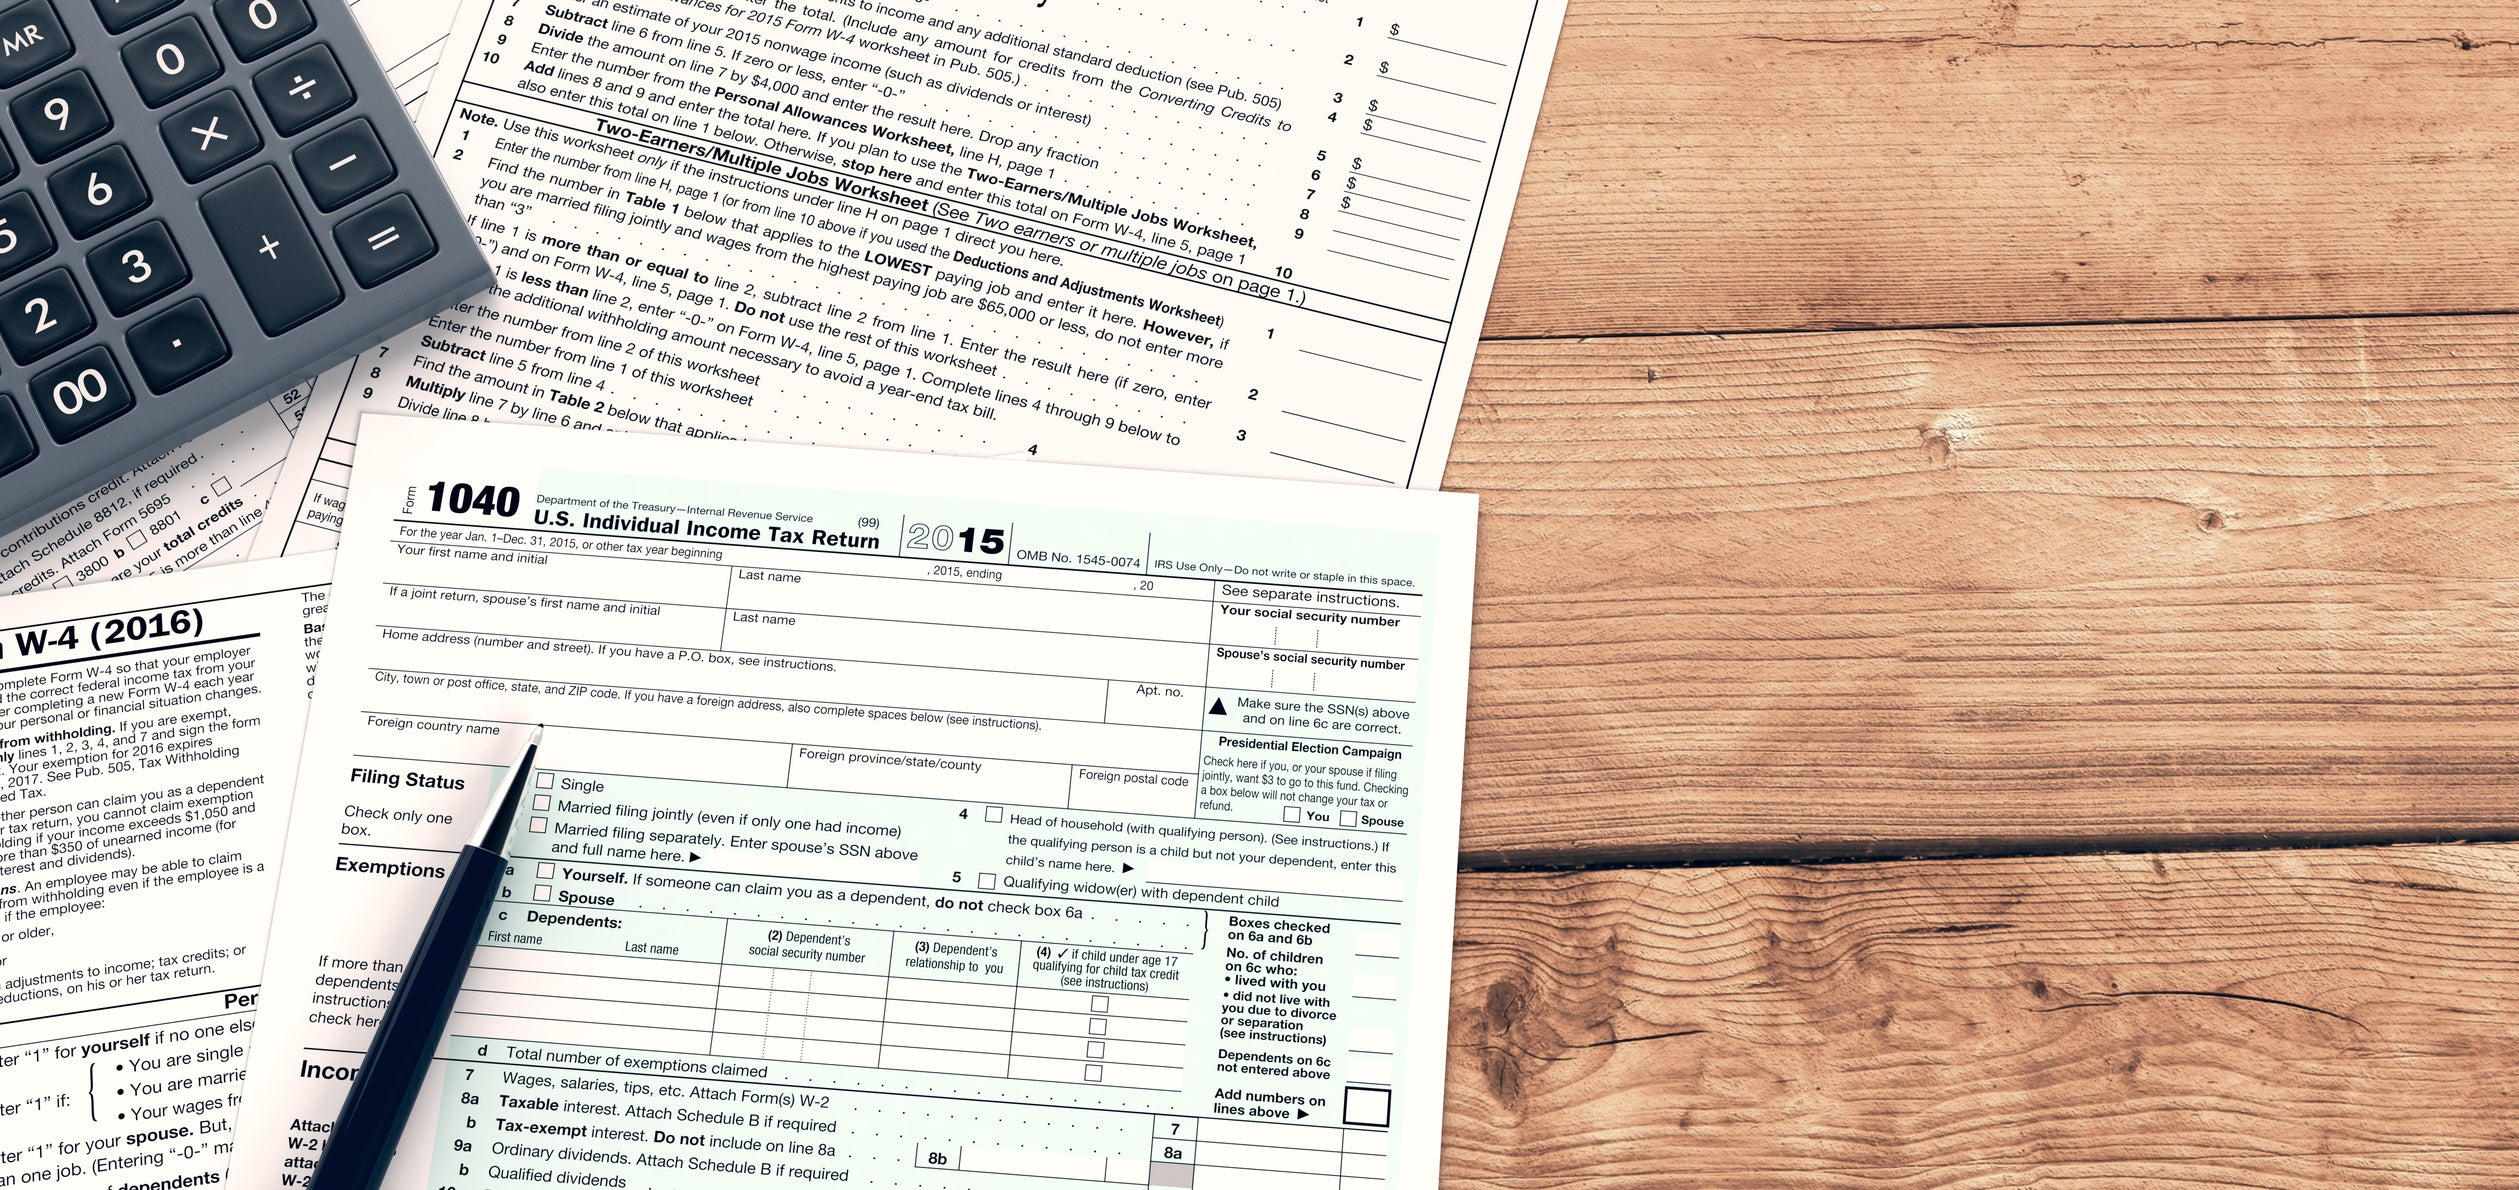 Is It Ever Okay to Cheat on Your Taxes? -- The Motley Fool